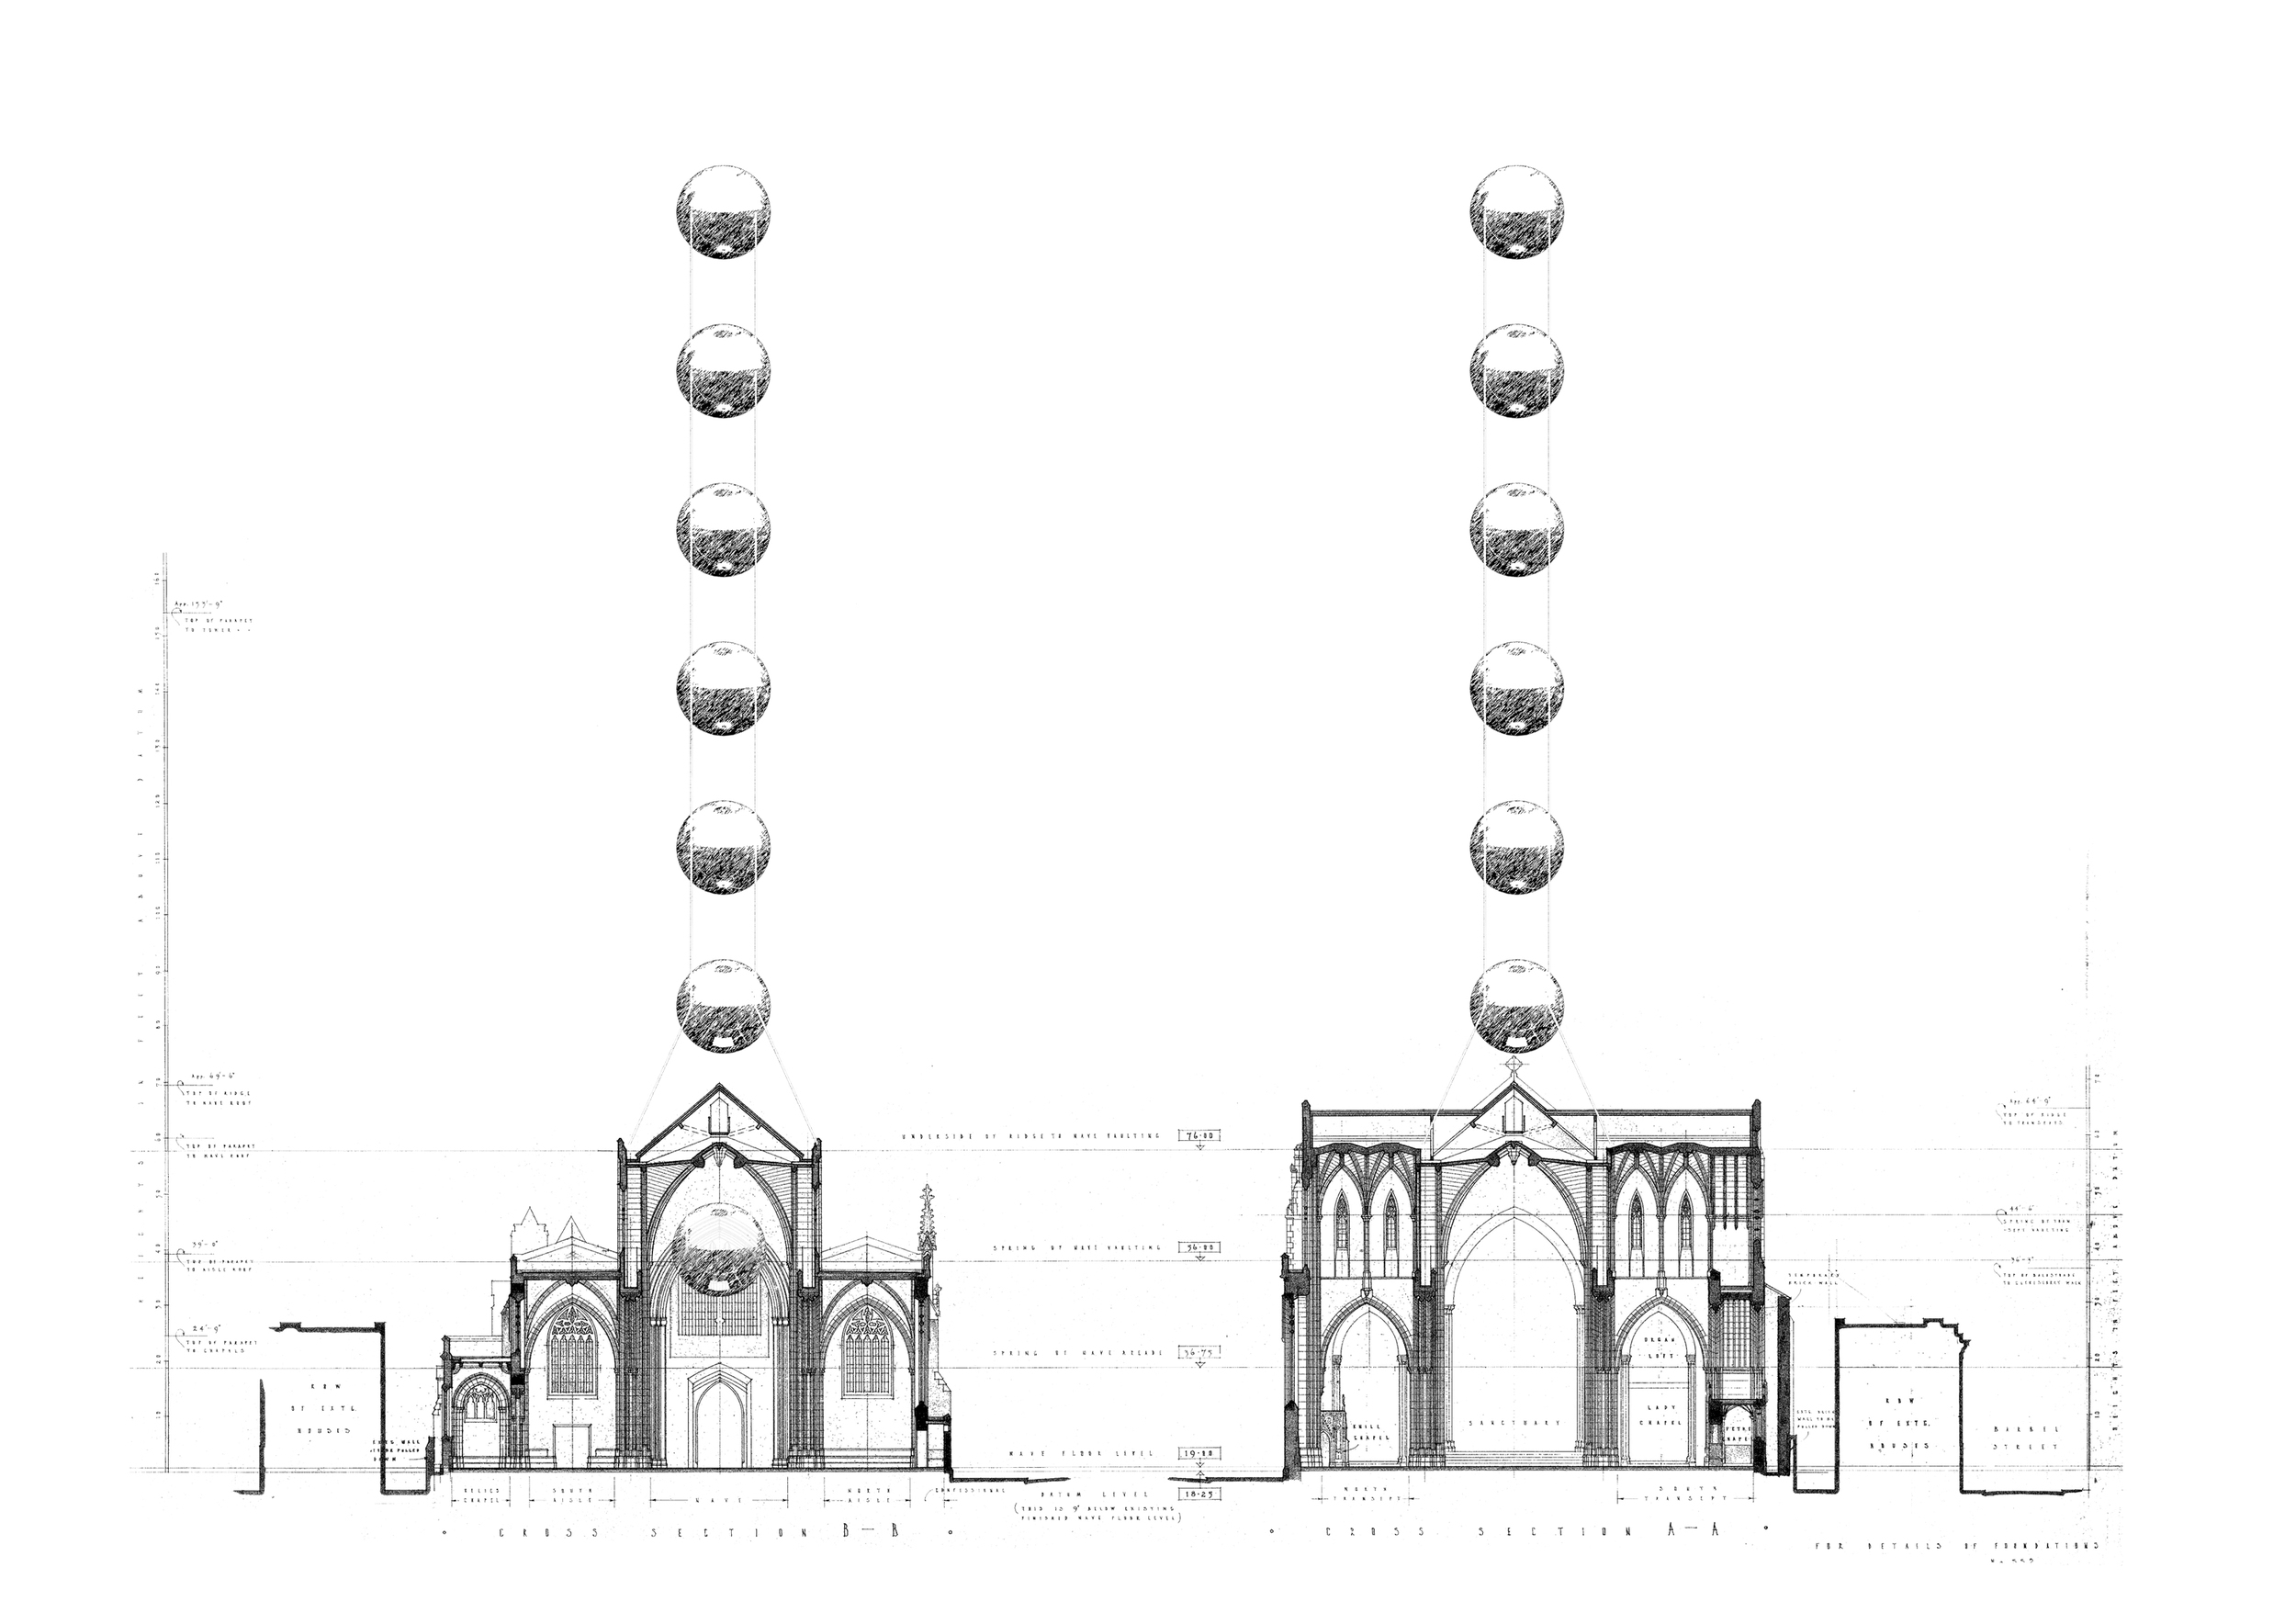 0000_ST GEORGES CATHEDRAL_PROPOSED - Cross Section.jpg